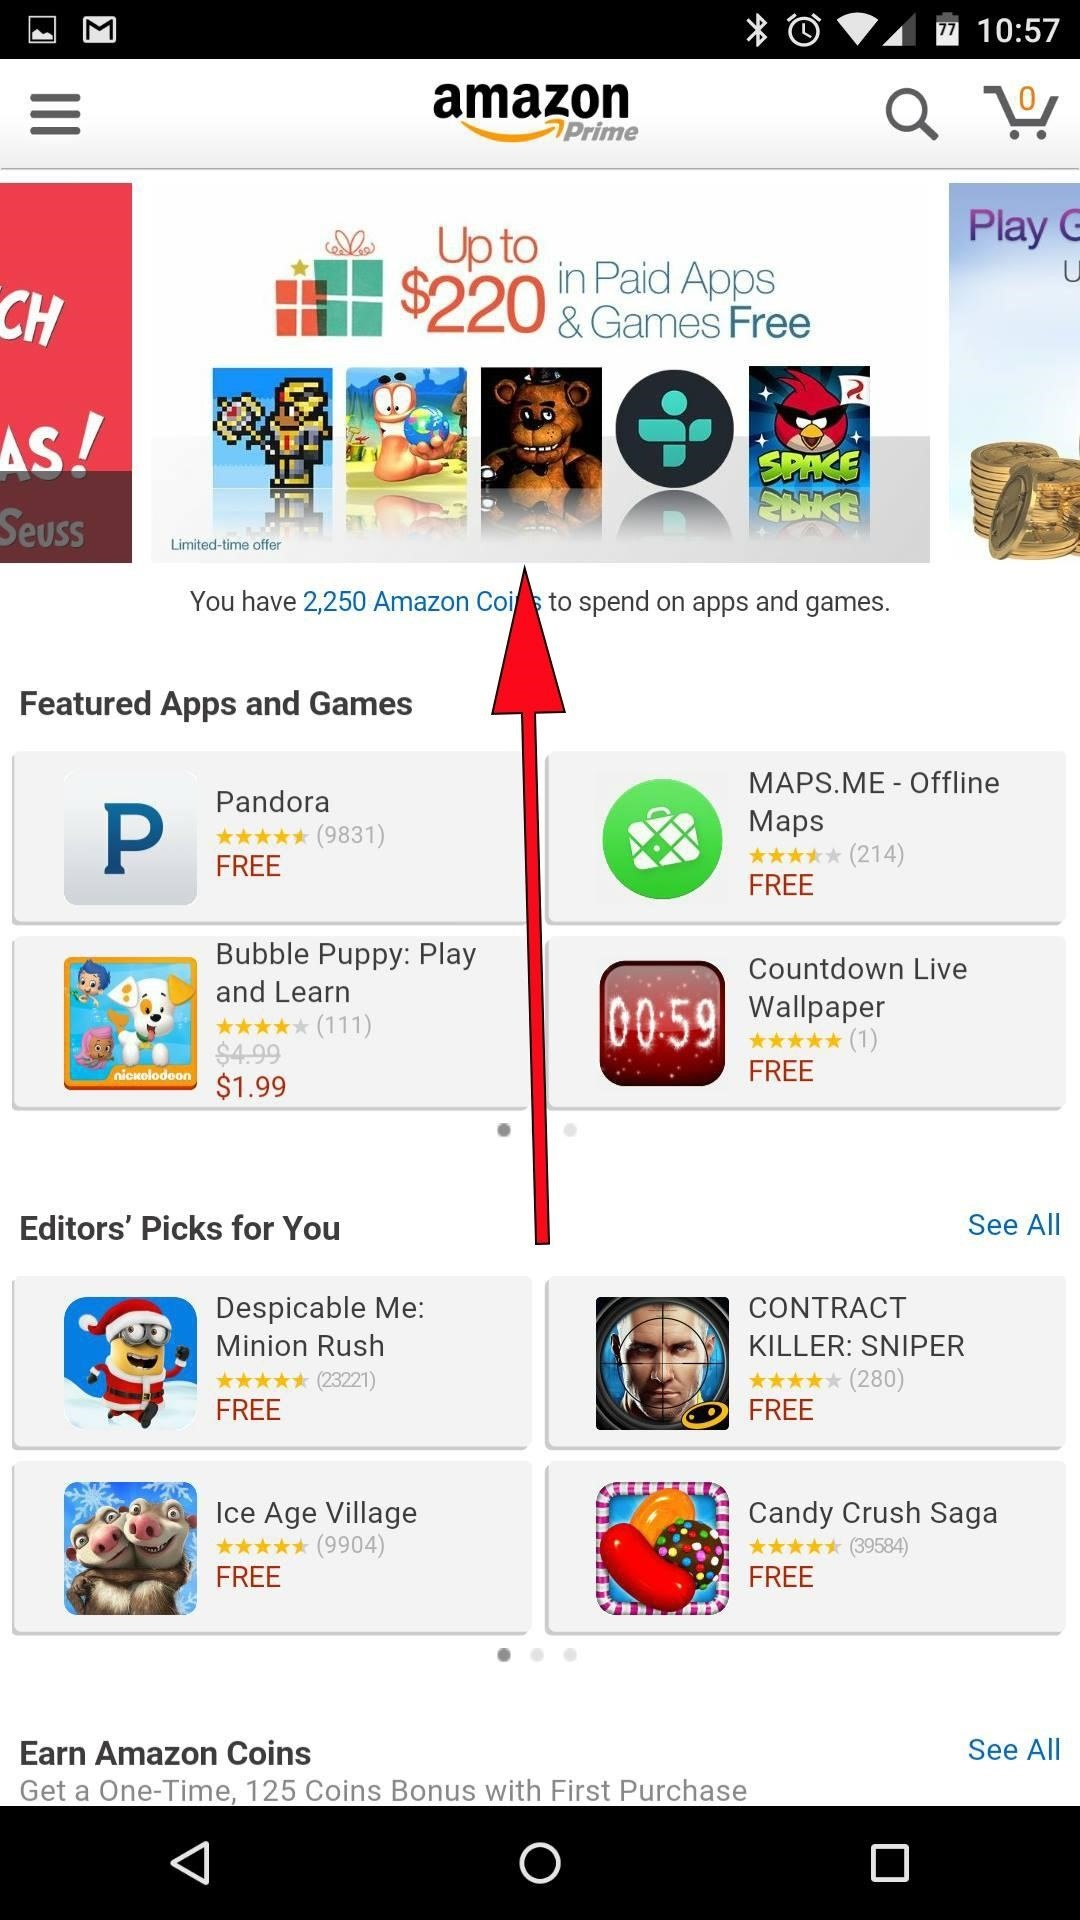 How to Get 40 Paid Android Apps for Free in the Amazon